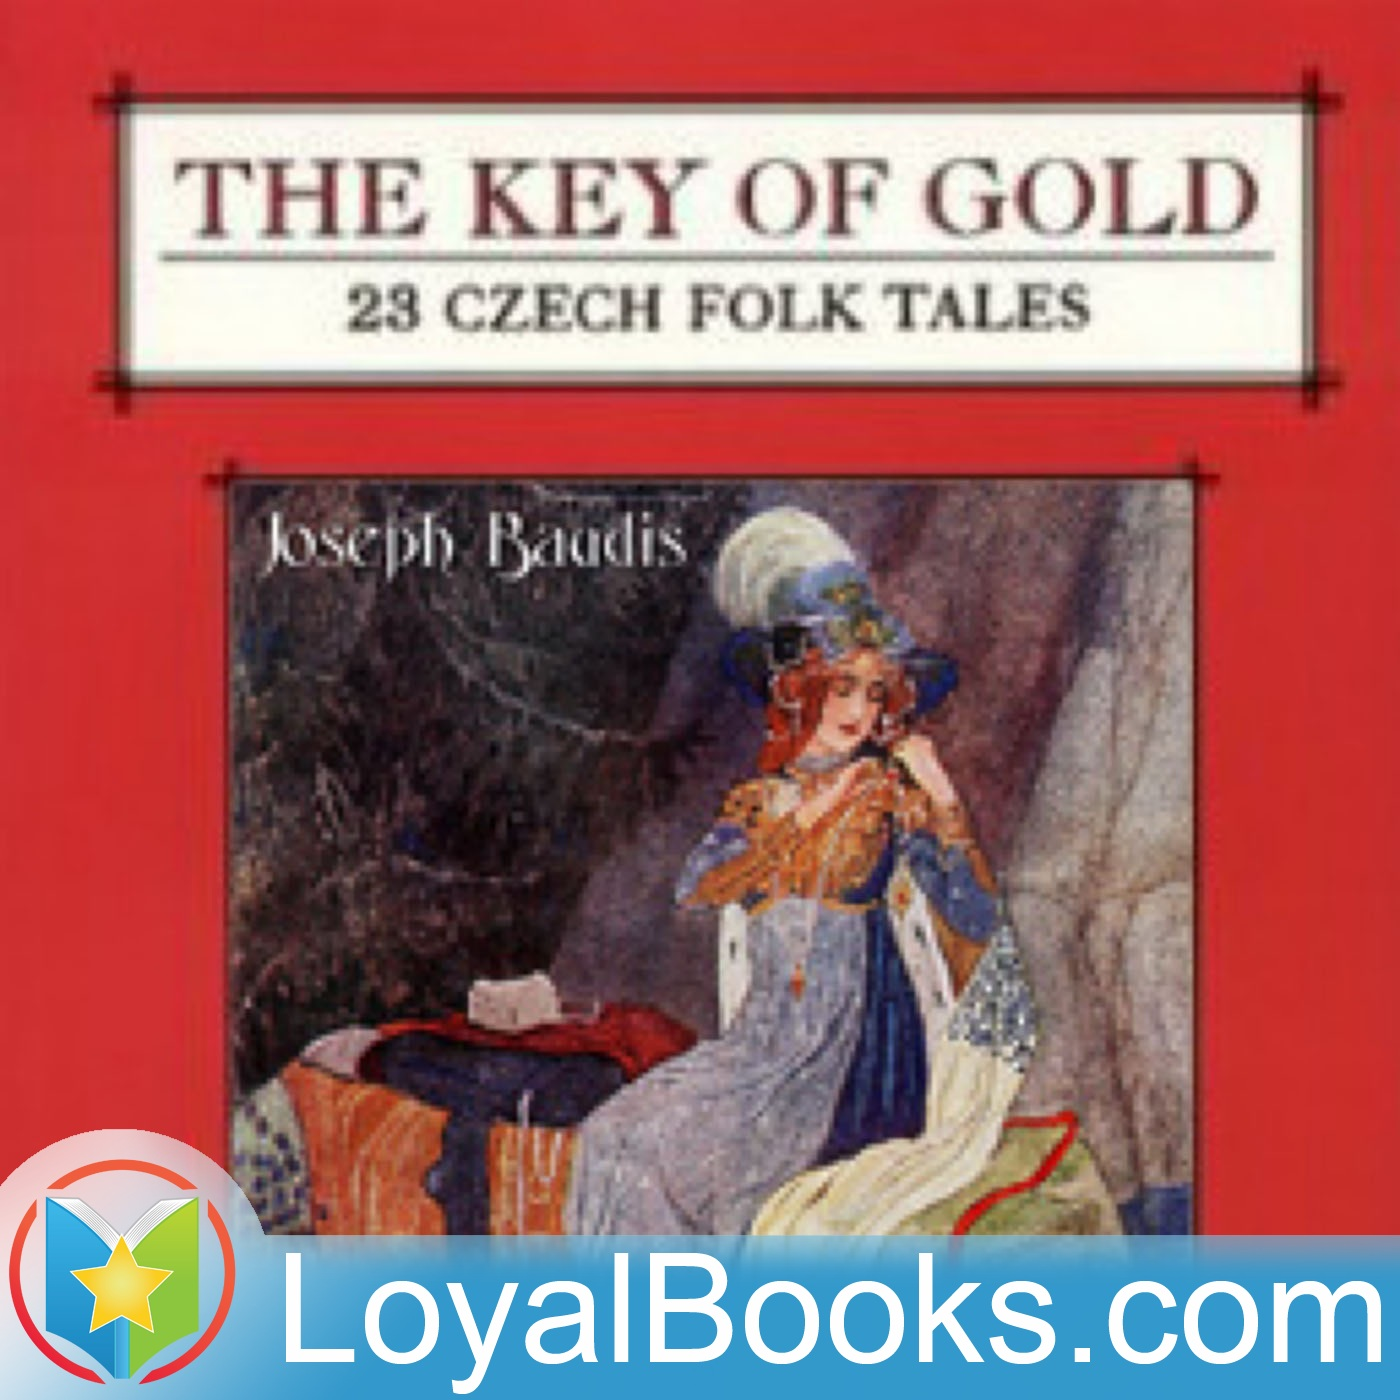 <![CDATA[The Key of Gold: 23 Czech Folk Tales by Unknown]]>